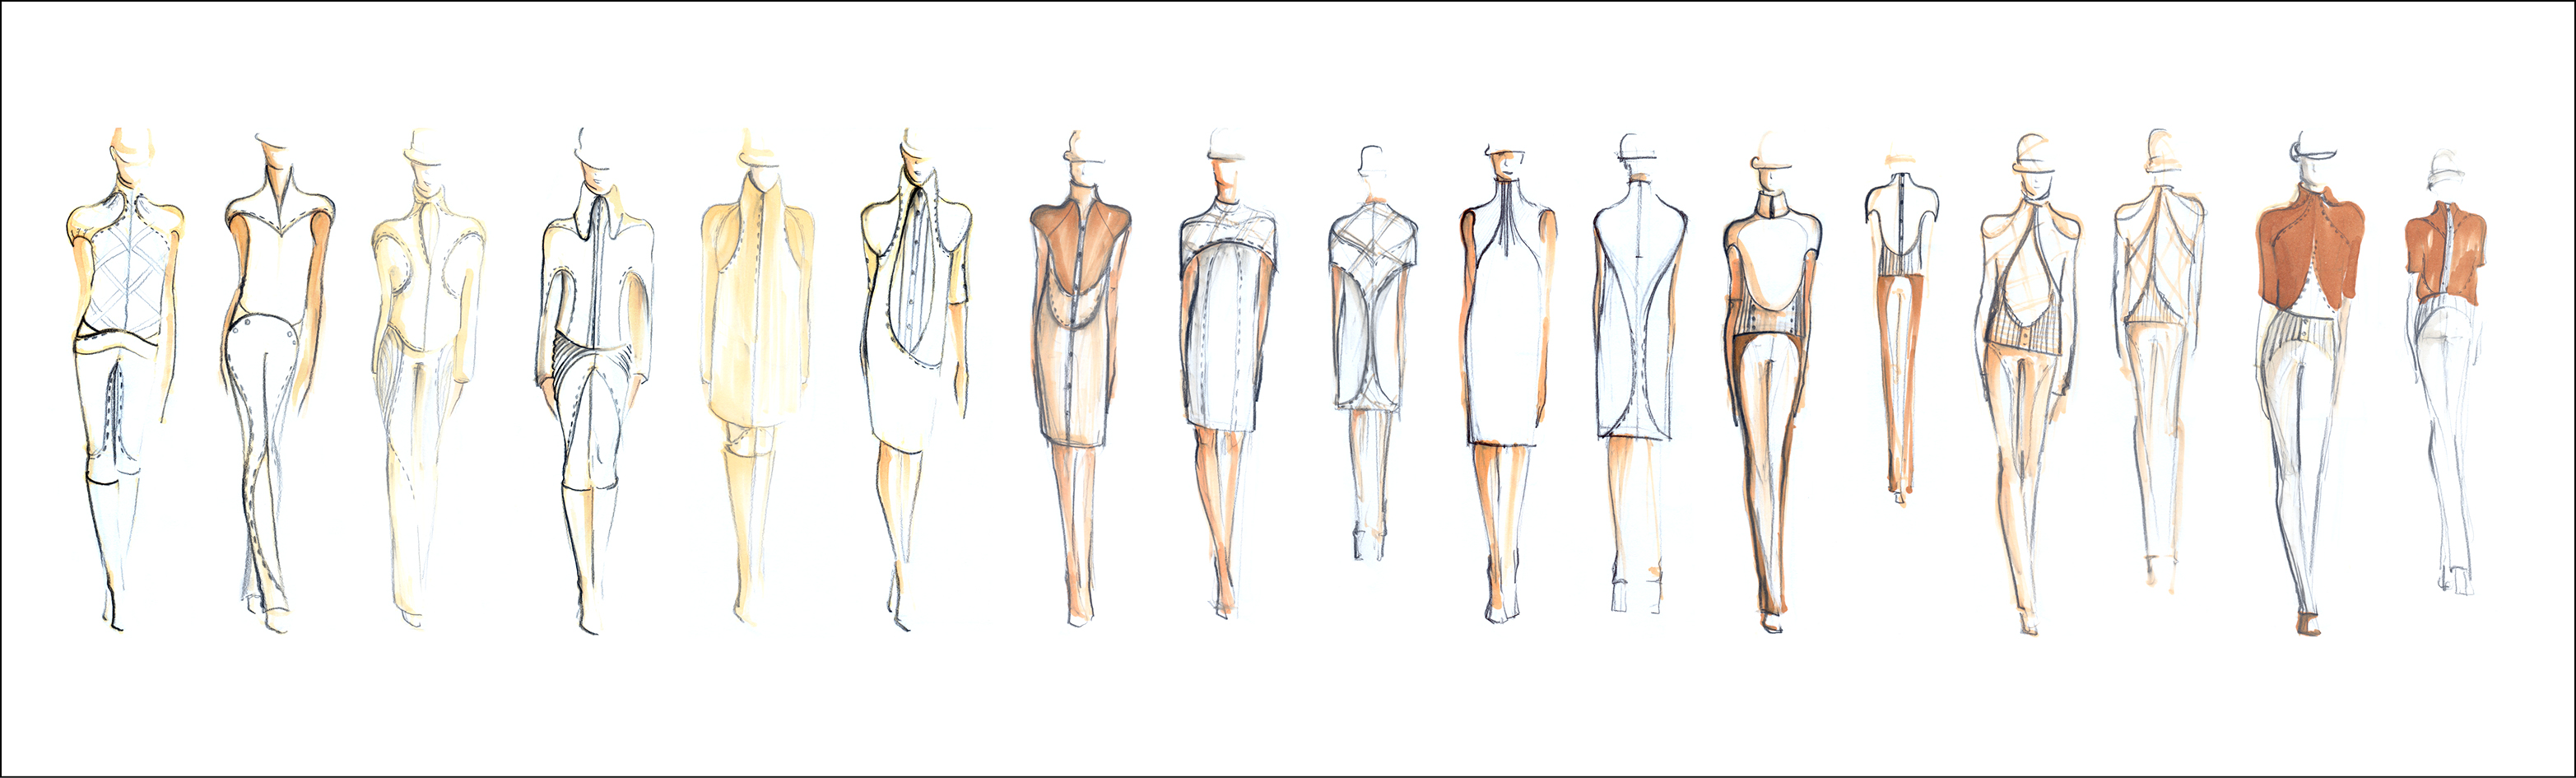 Sketches Symplicity Collection by Andreea Ambs